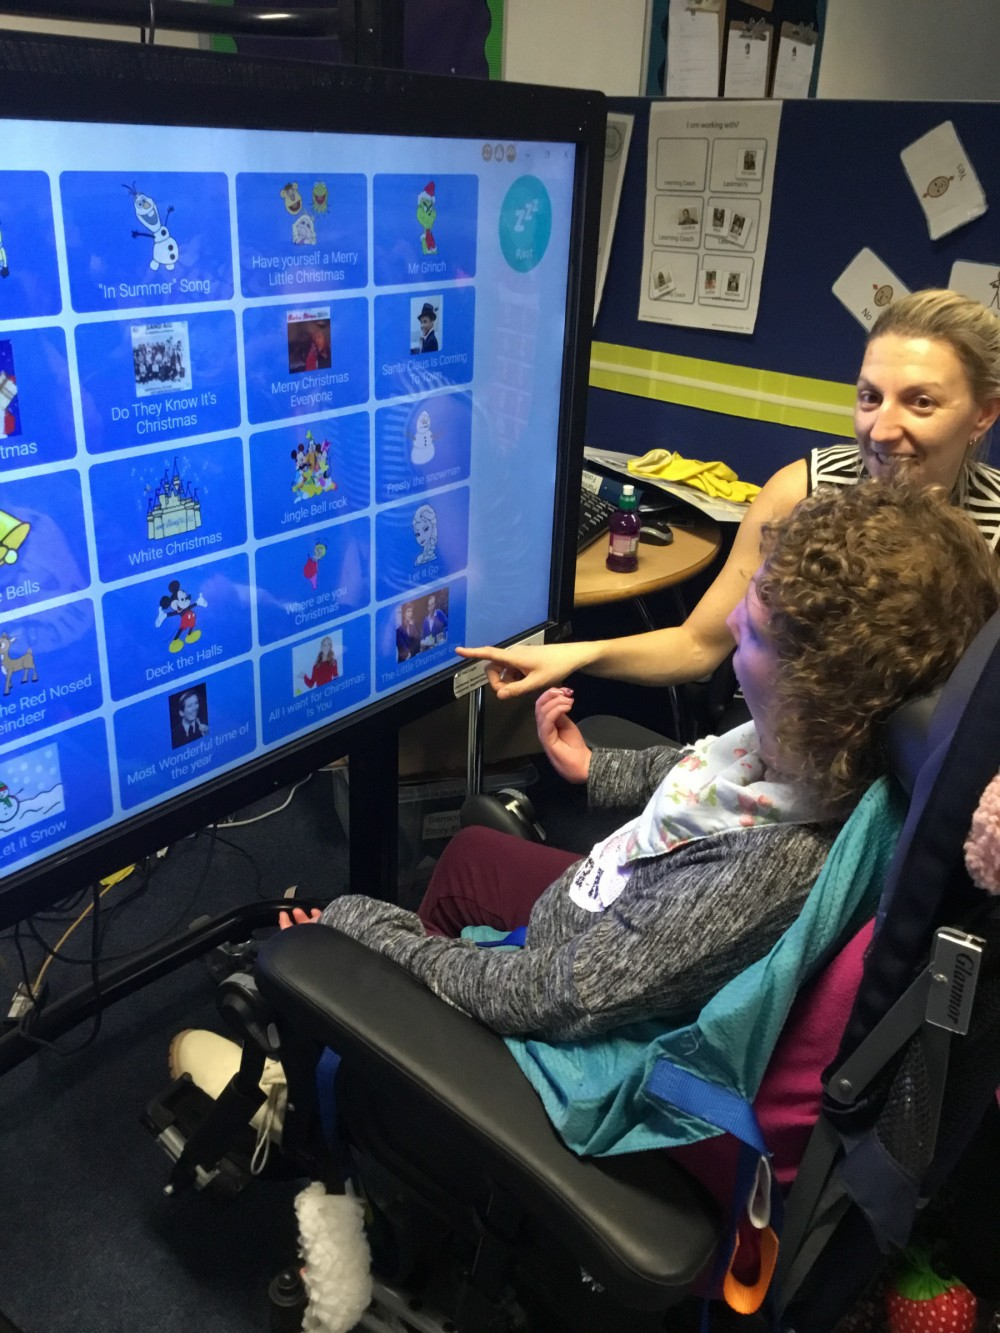 a learner selects a song from many choices on a large screen